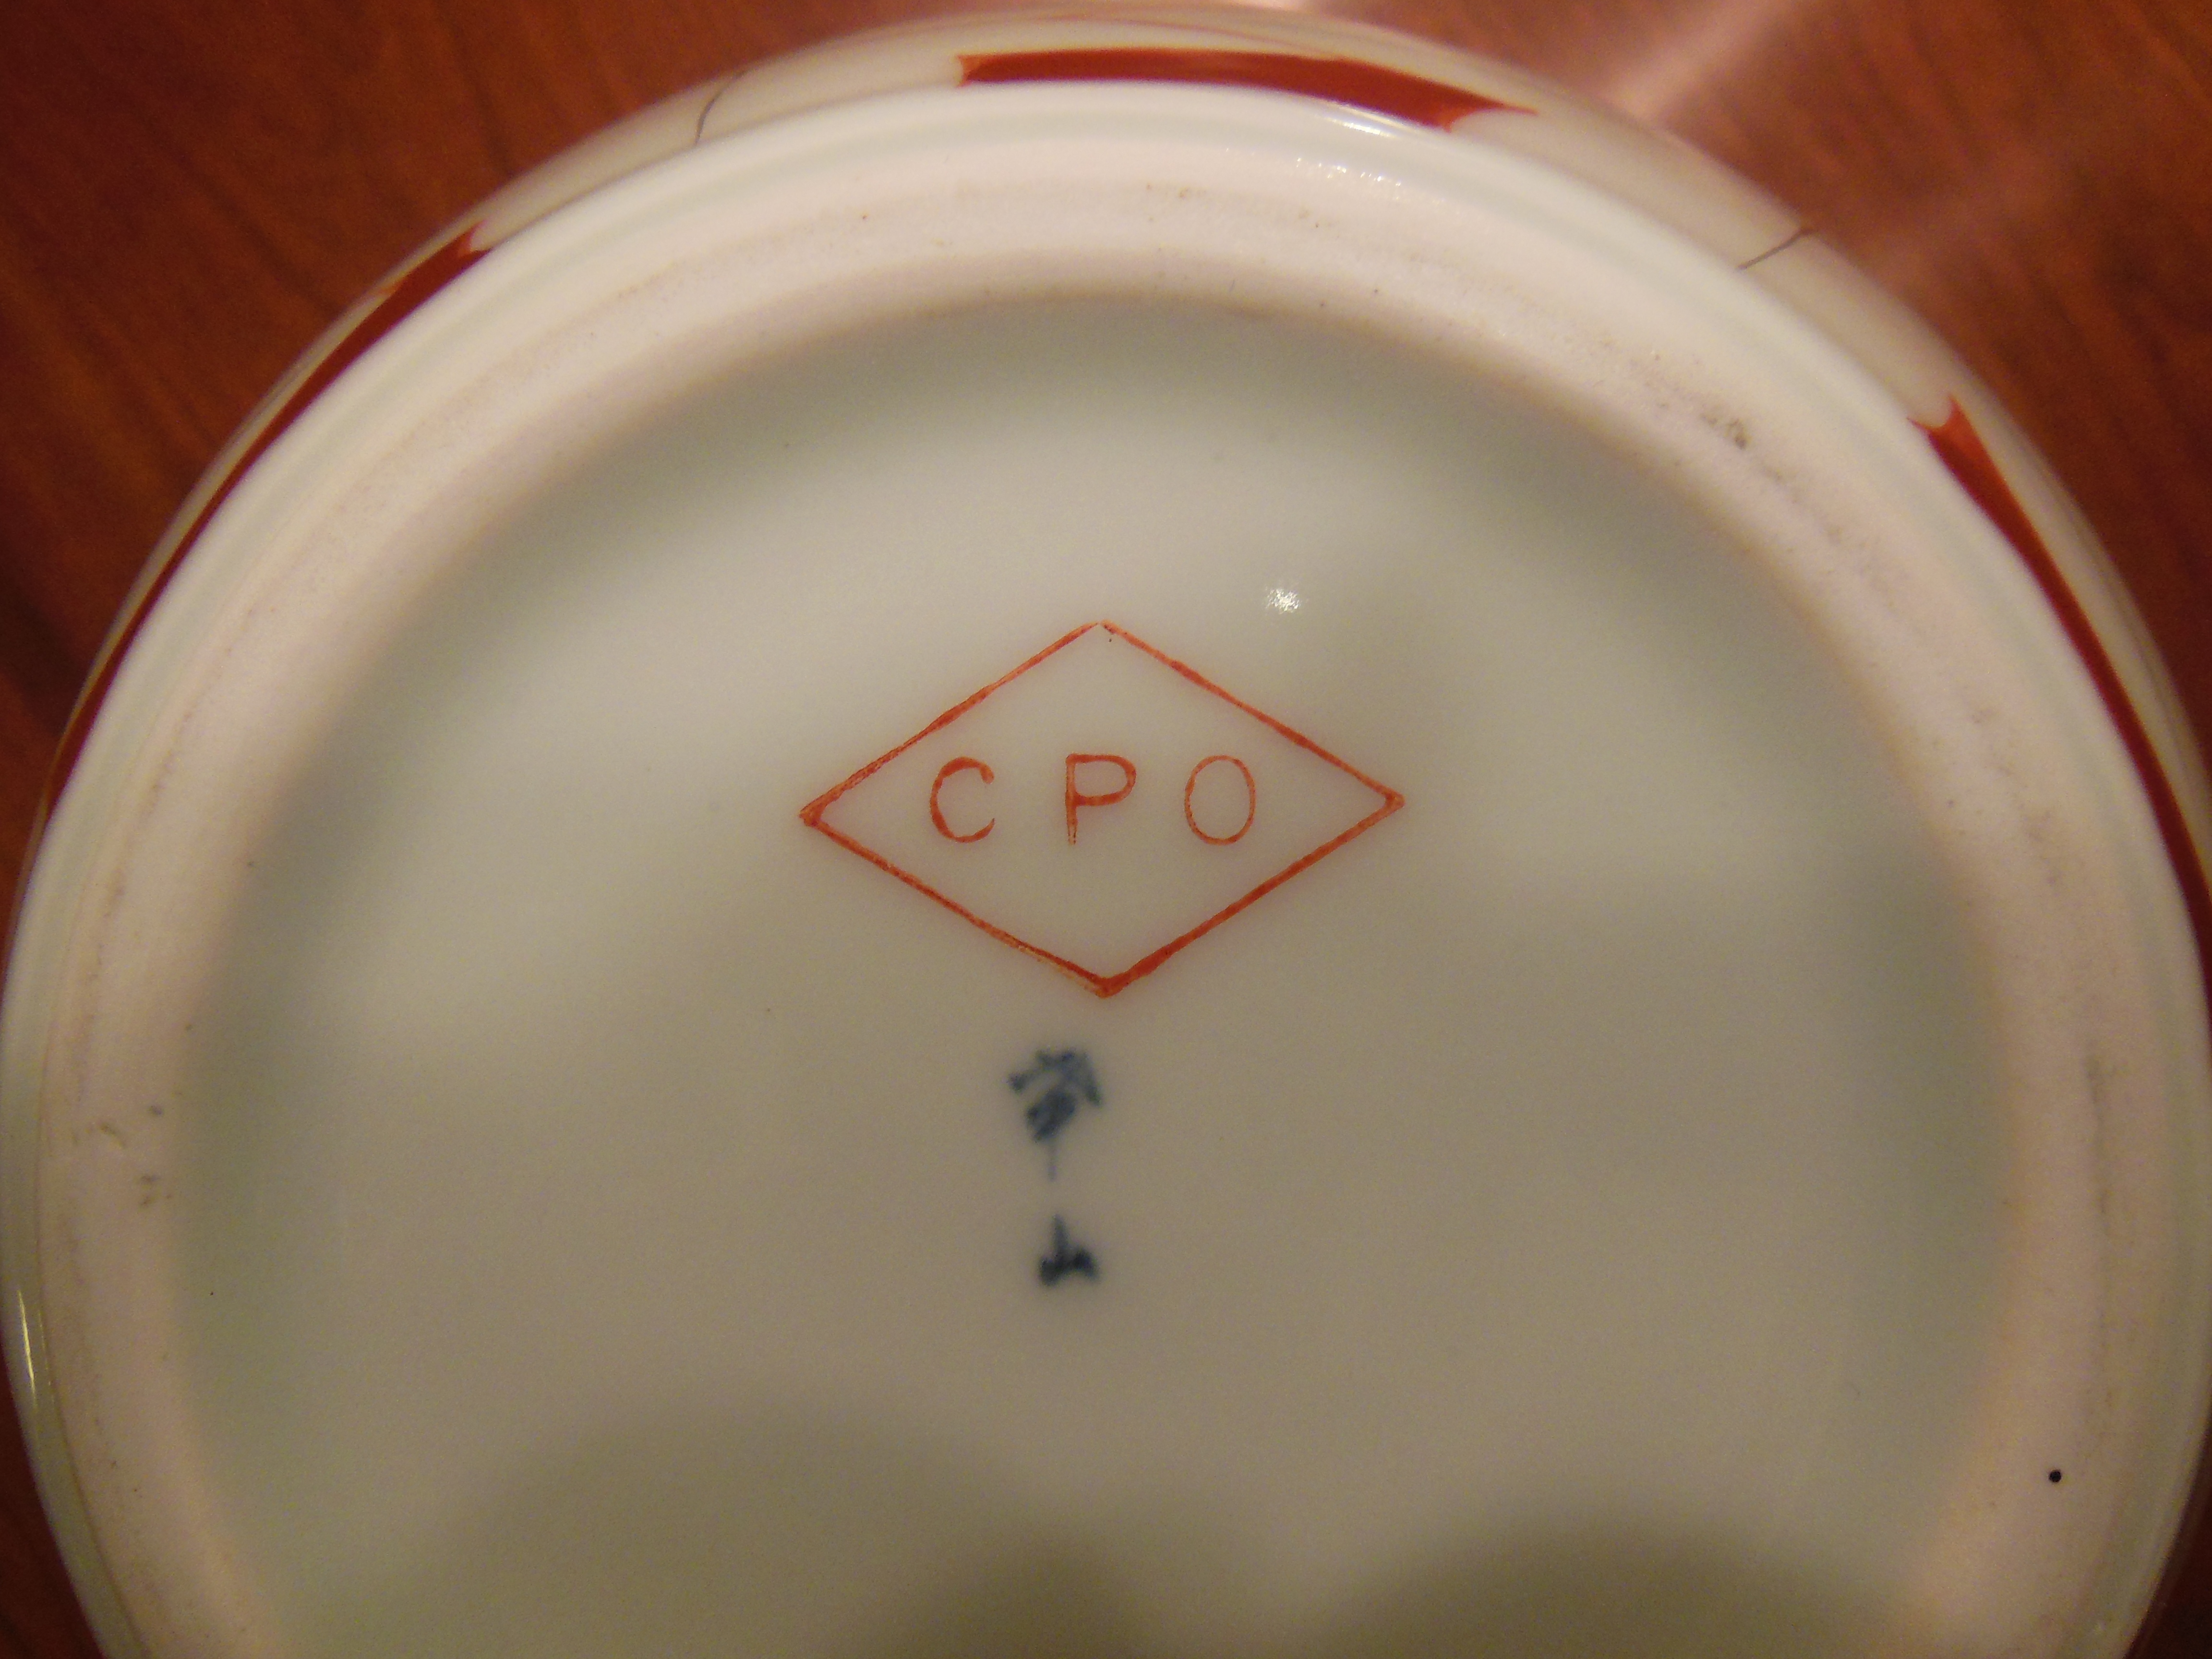 I have a ceramic vase with a marking of cpo in a diamond on the full size image reviewsmspy